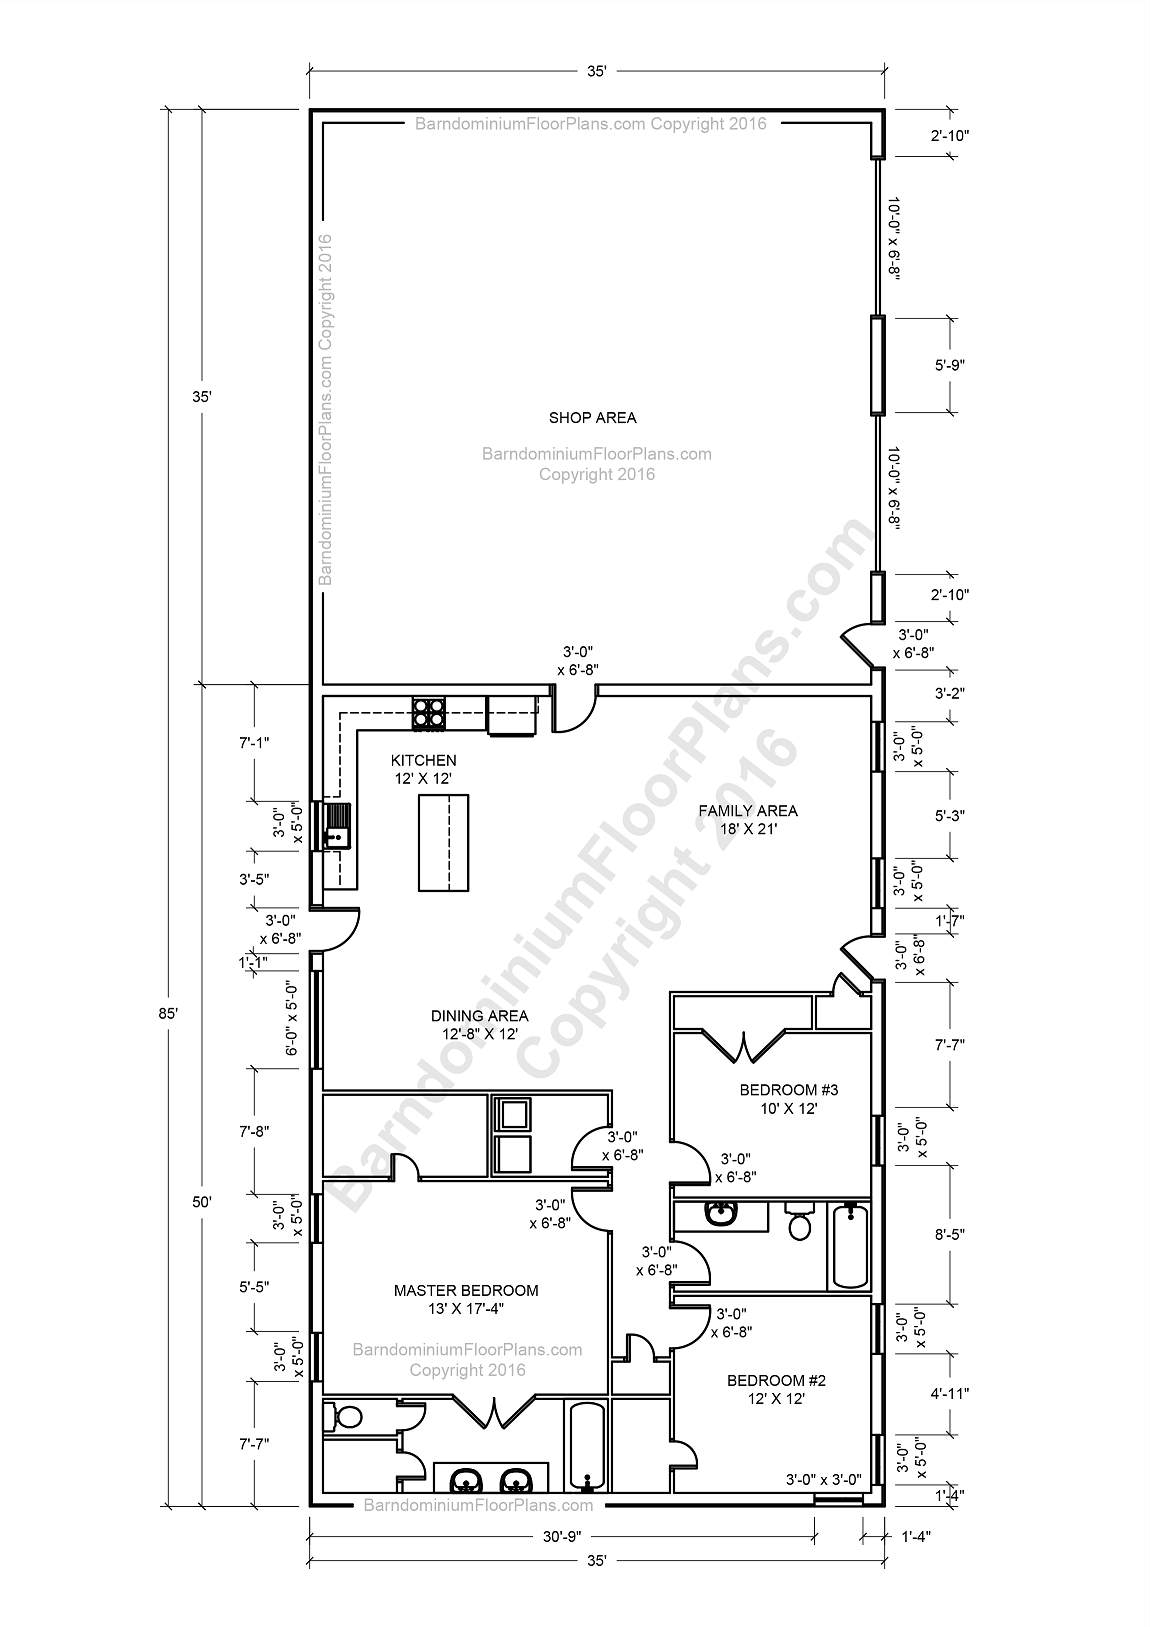 Best Barndominium Floor Plans For Planning Your Own Barndominium Barndominimunfloorplans Tags Barndominium Floor Plans